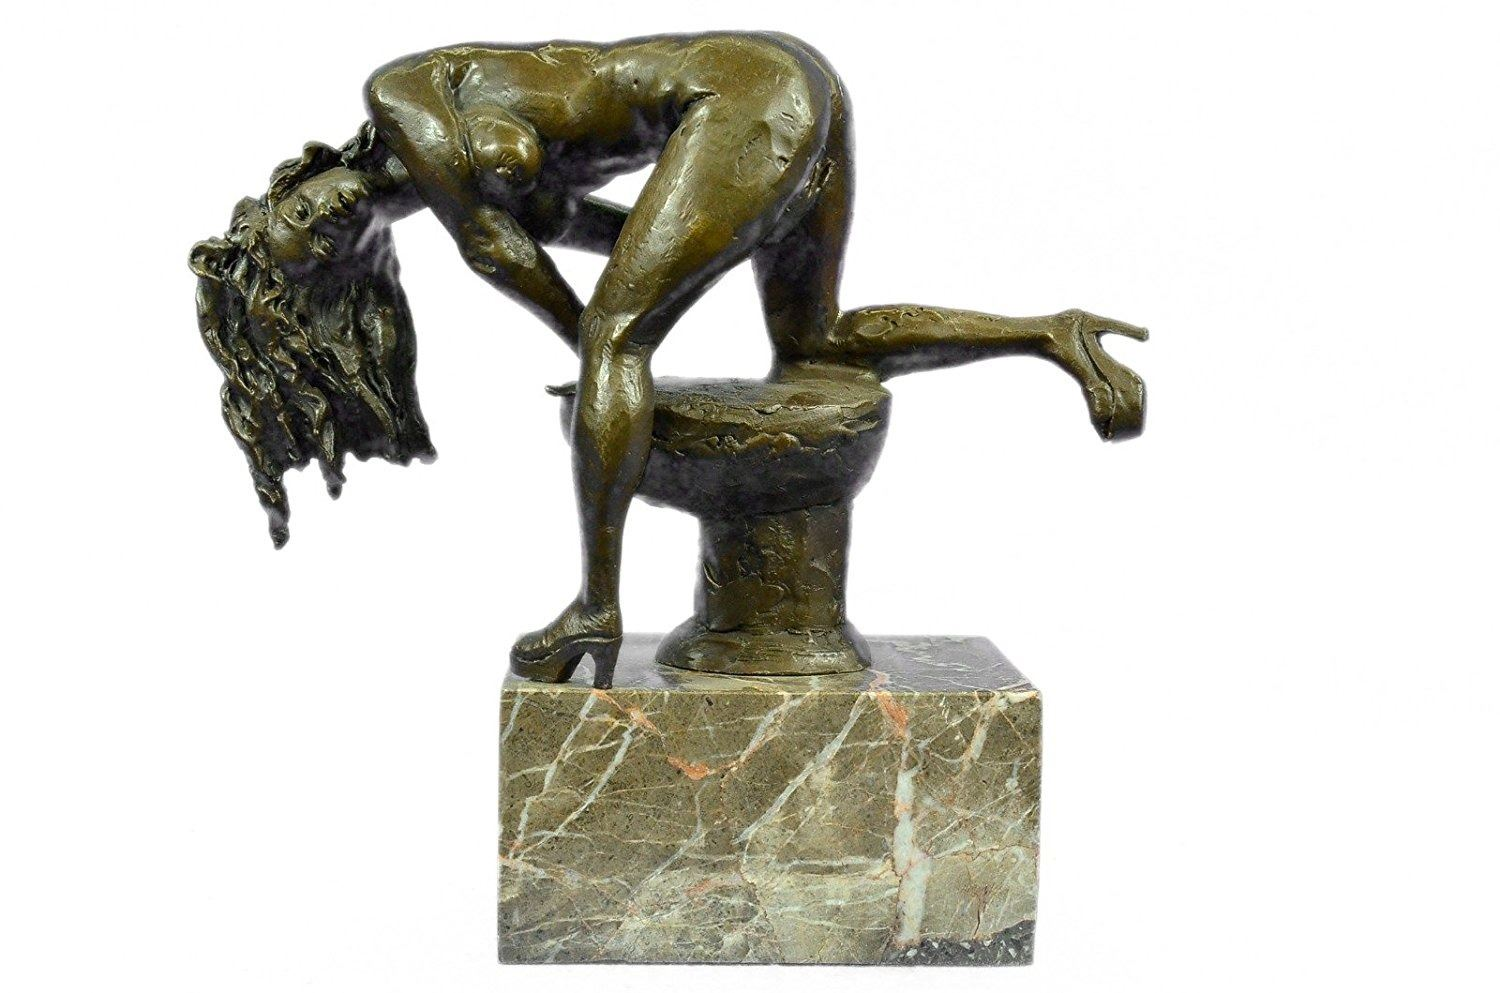 Nude Female Bronze Sculpture on Marble Base Statue